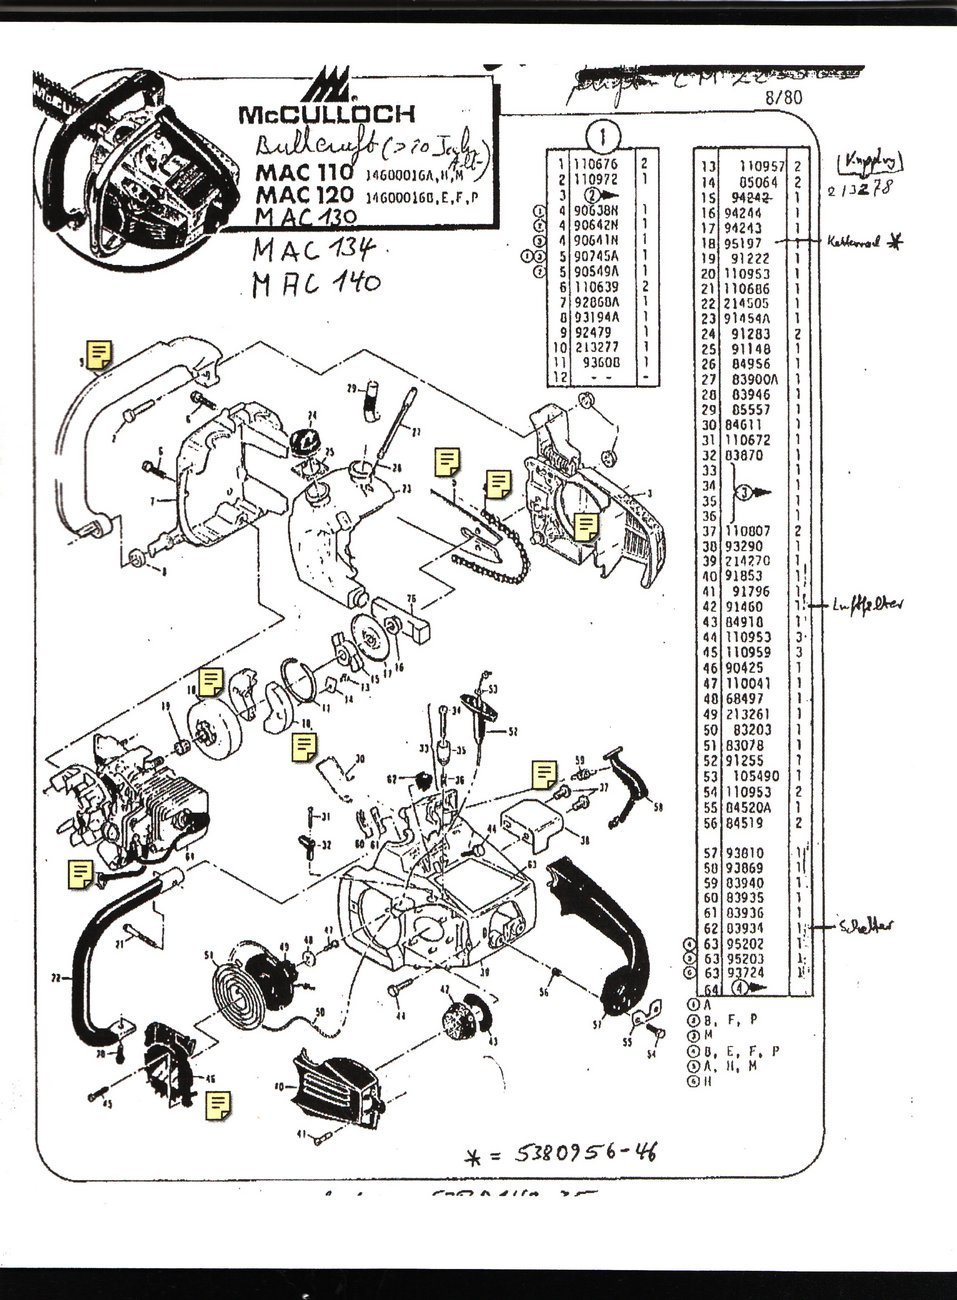 my mac120 saws fuel pump is u s what is the secret of removing the rh justanswer com Vintage McCulloch Chainsaw Cord Cutter McCulloch Chainsaw Manual Mac 110 120 130